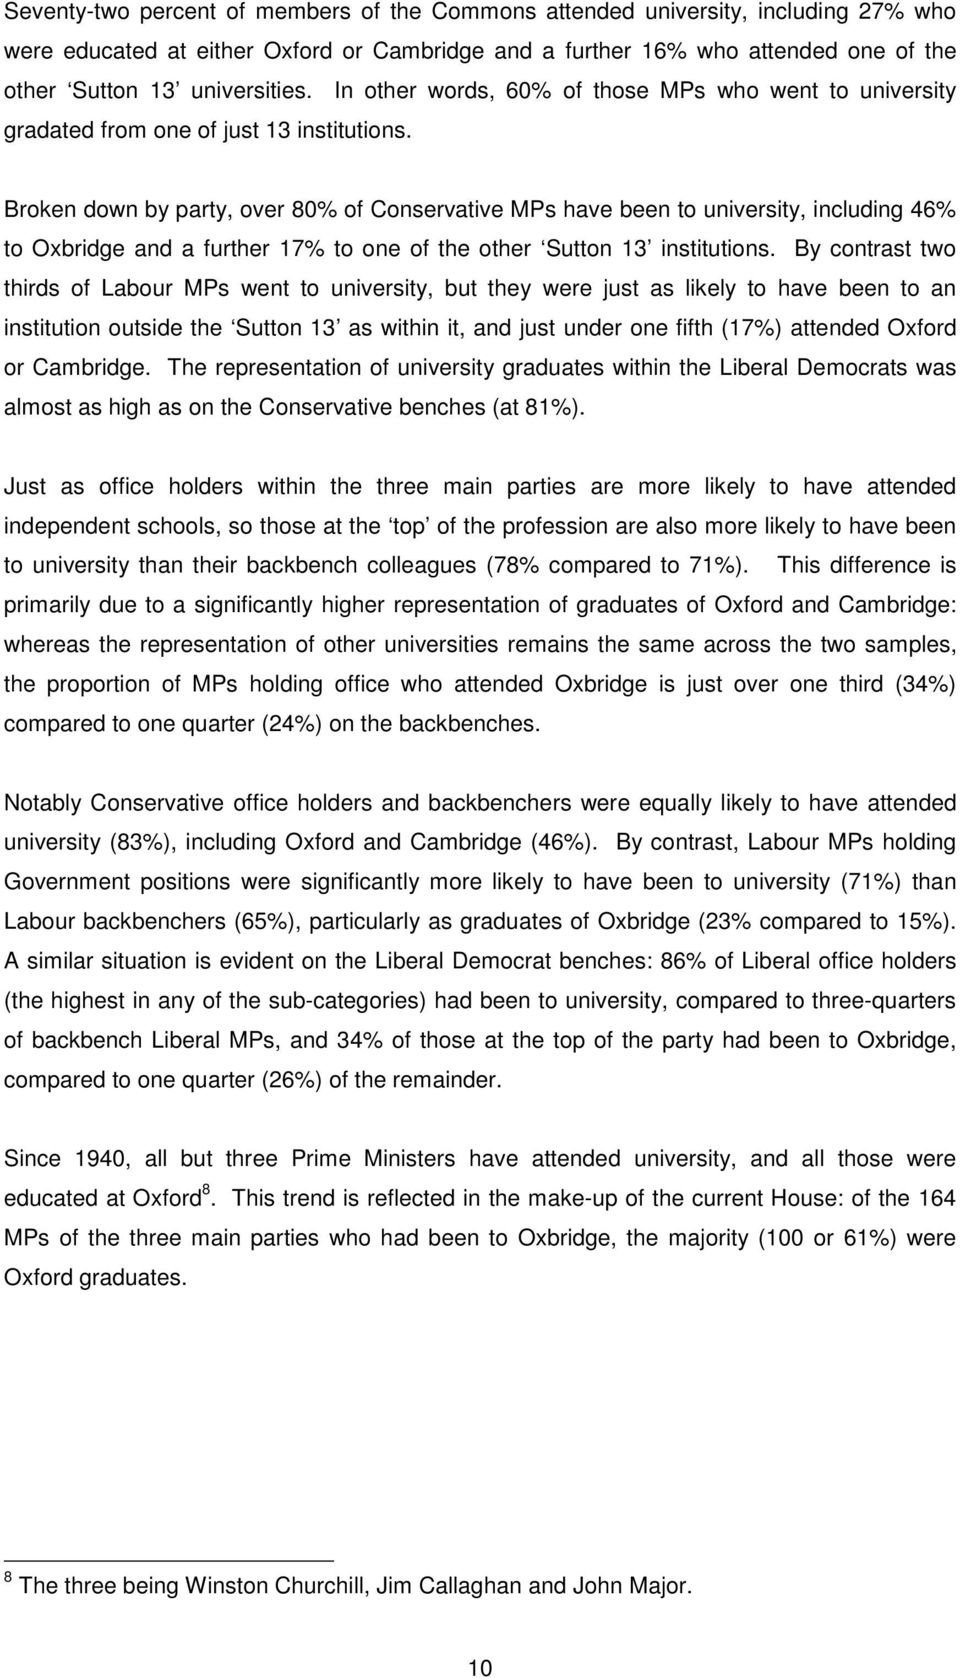 Broken down by party, over 80% of Conservative MPs have been to university, including 46% to Oxbridge and a further 17% to one of the other Sutton 13 institutions.